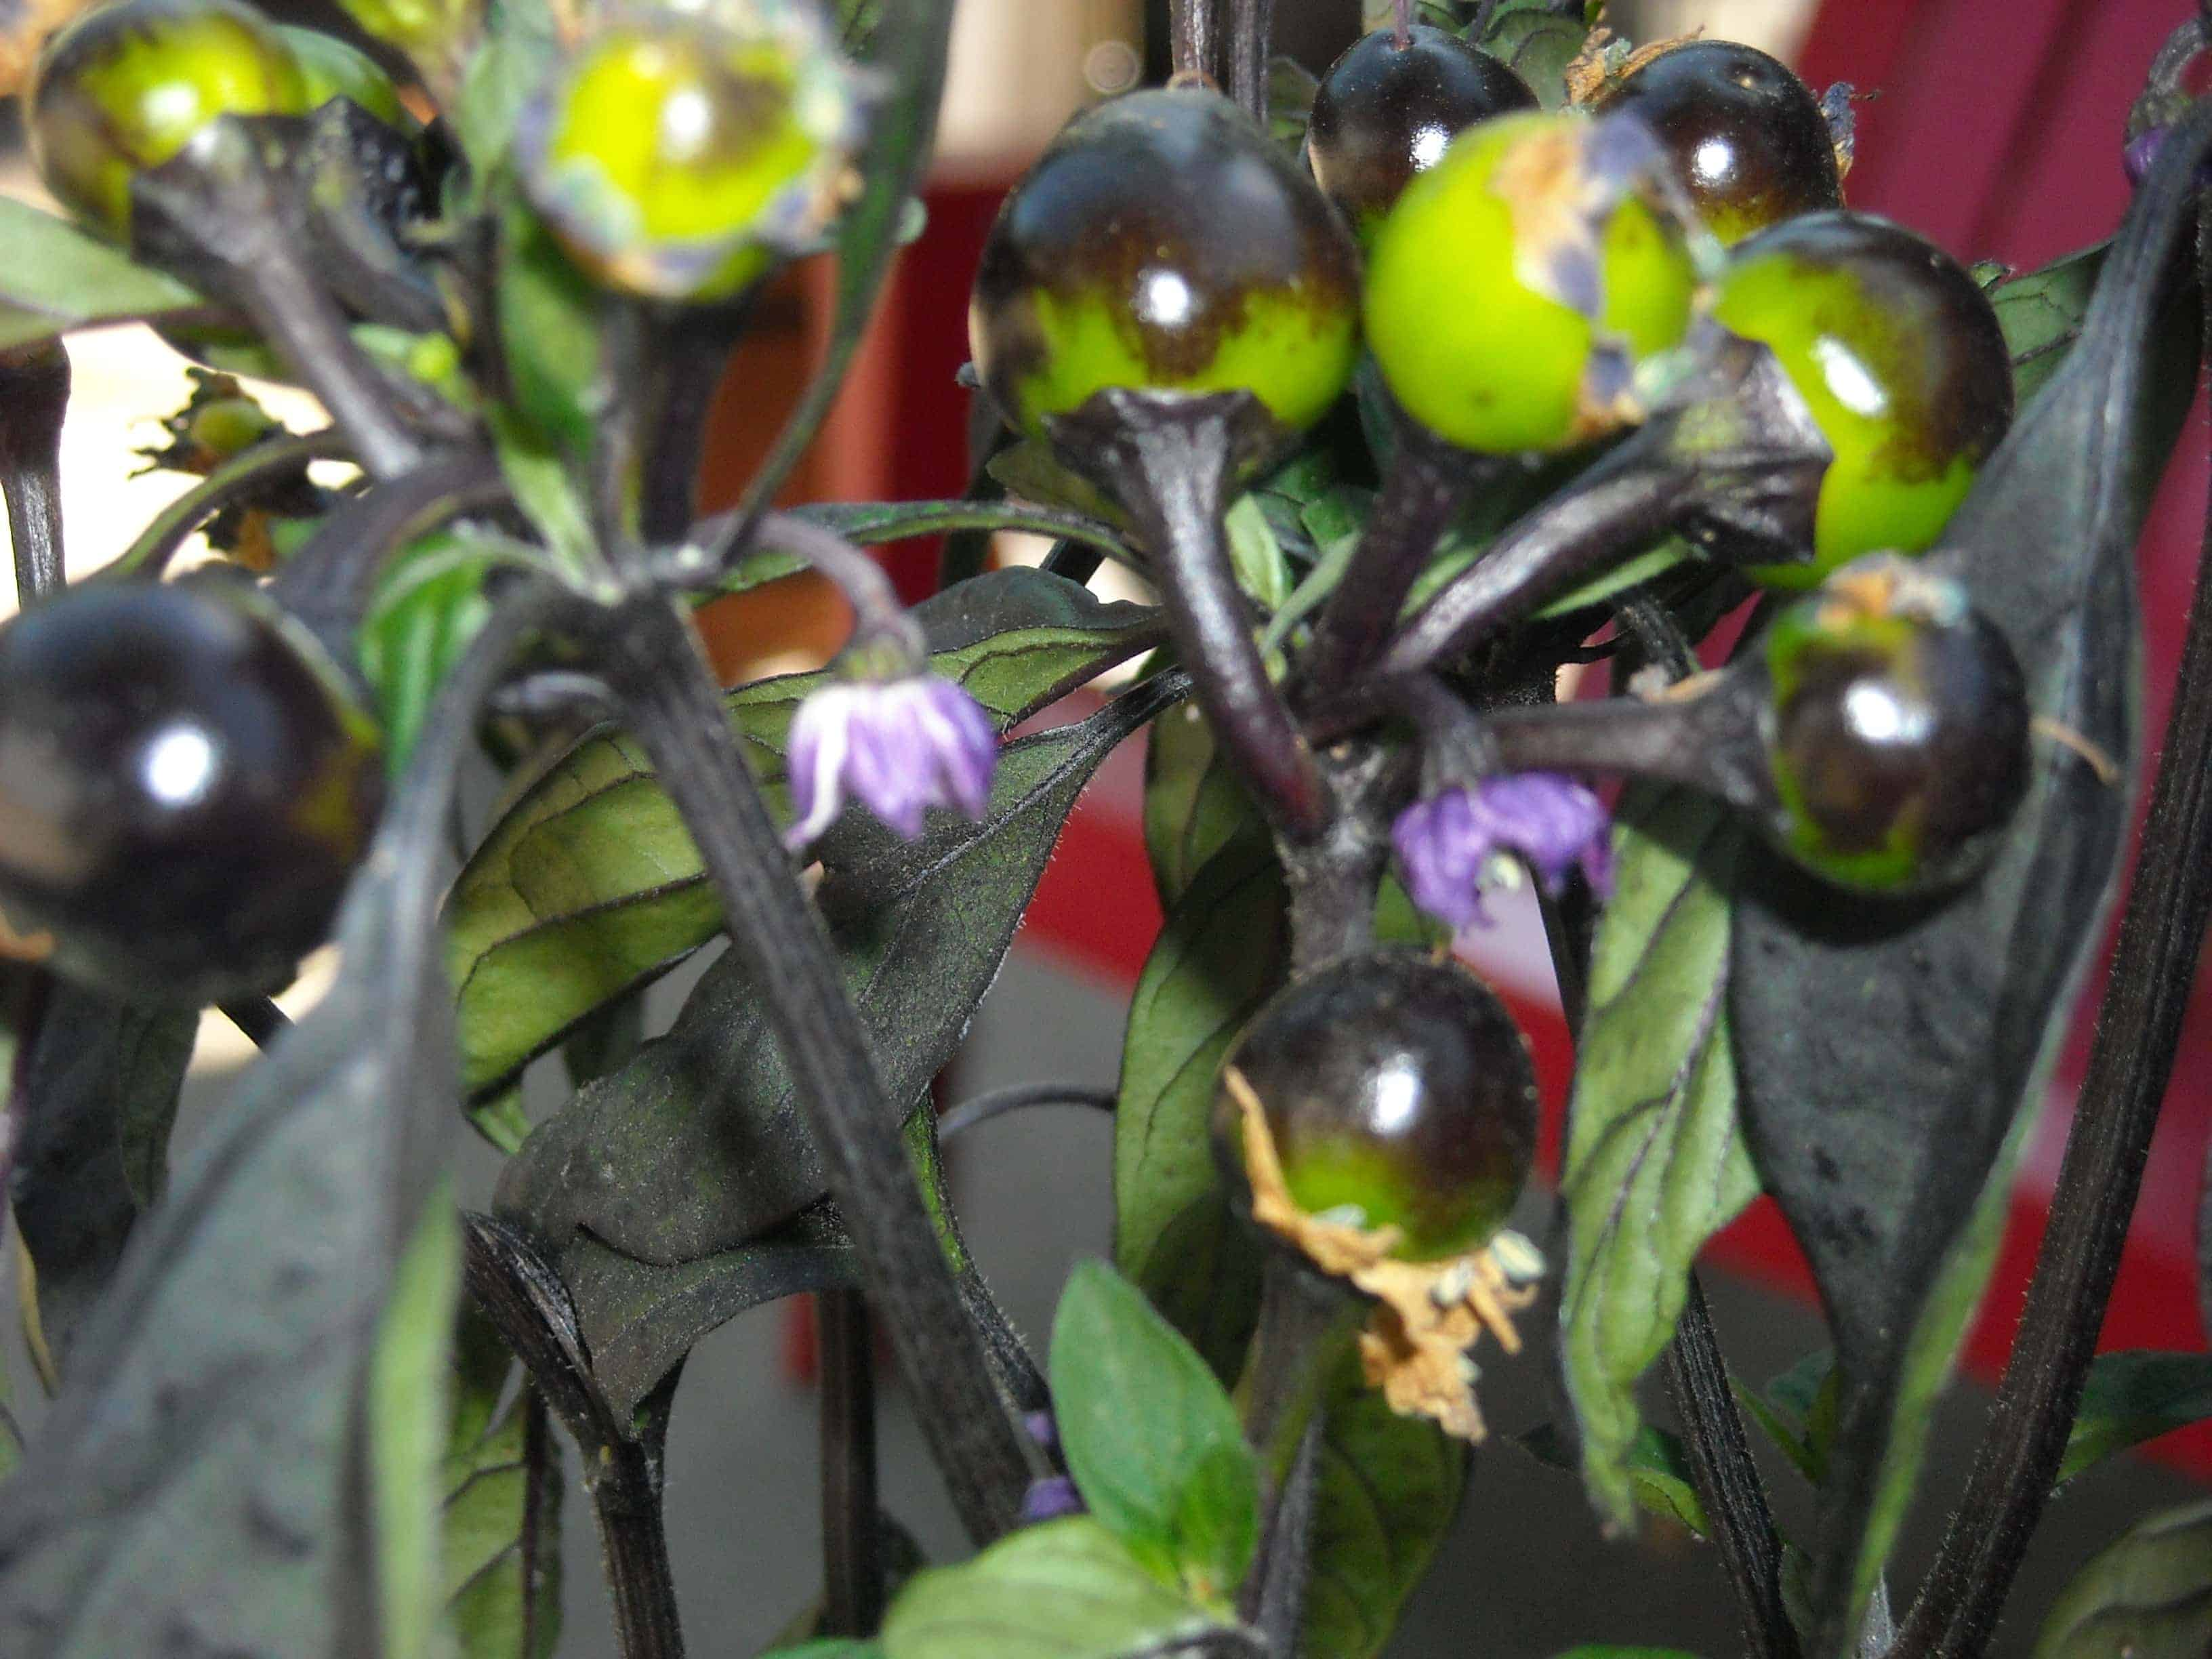 Black Pearl Peppers are some of the most compact types of pepper plants